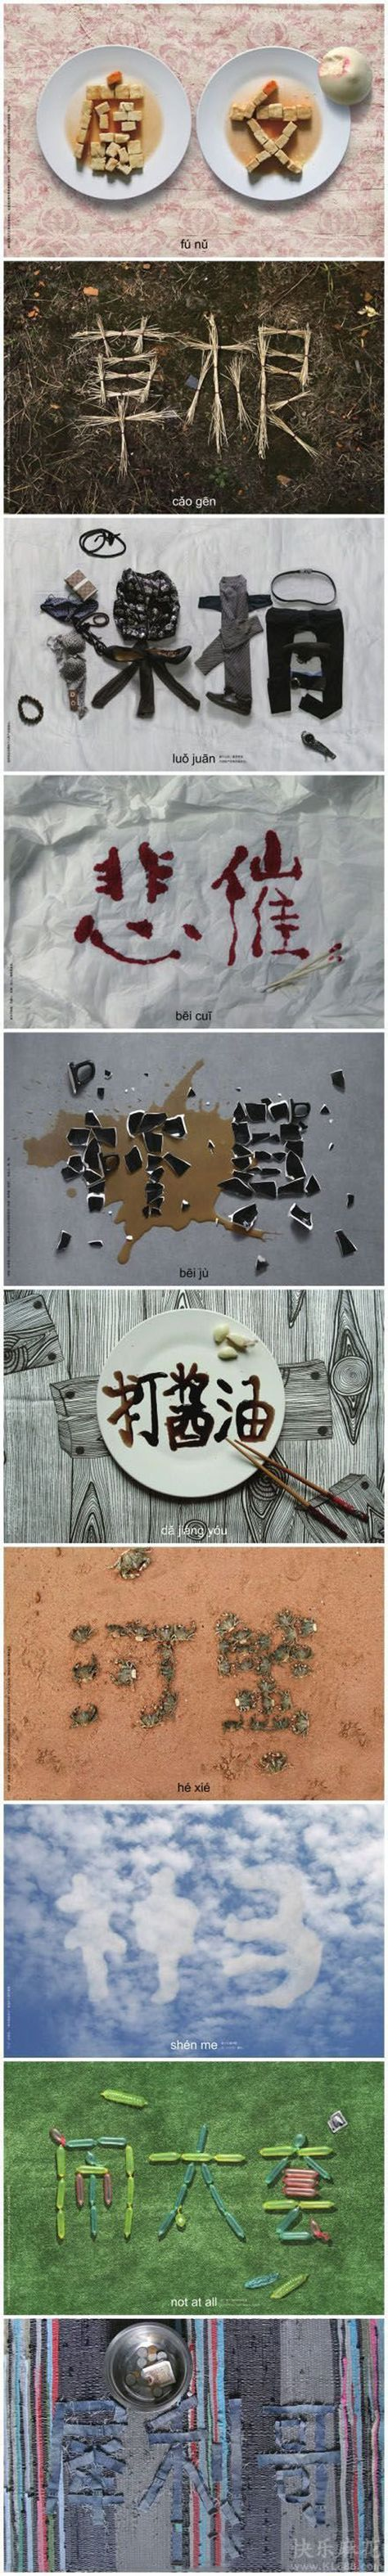 Experimental chinese typography